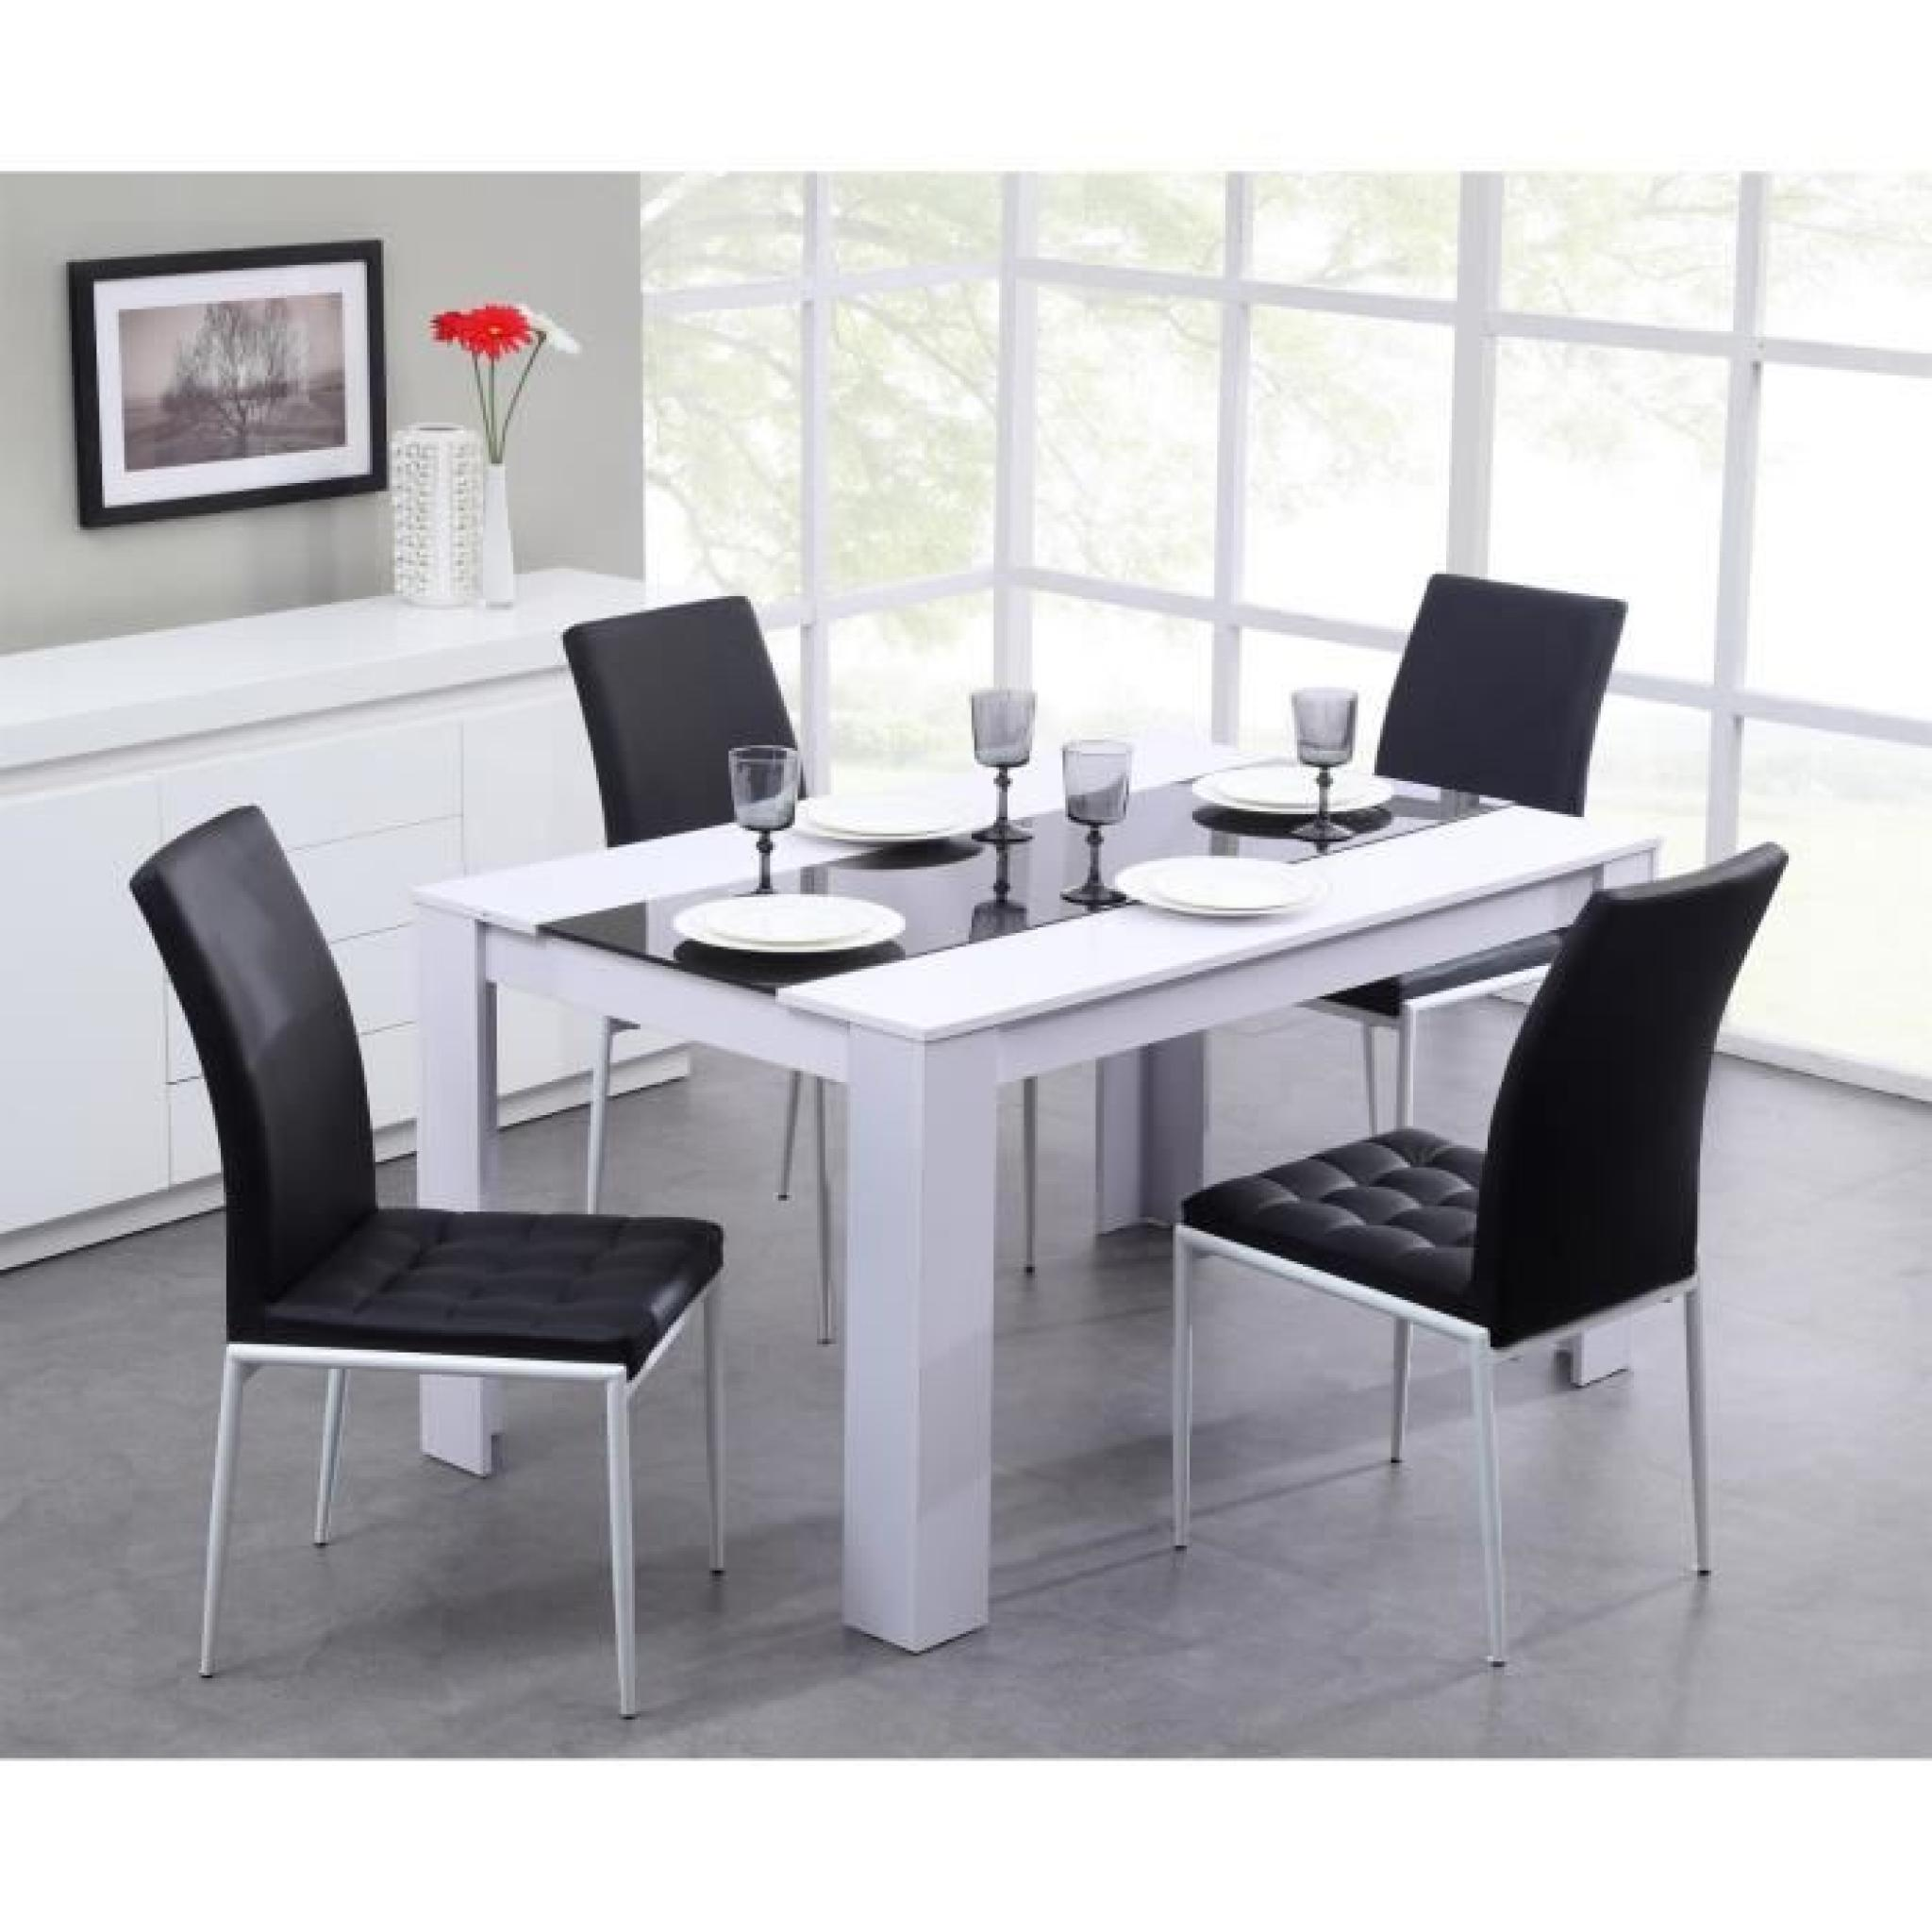 Damia table manger 140x90cm noir et blanc achat vente - Dimensions table a manger ...